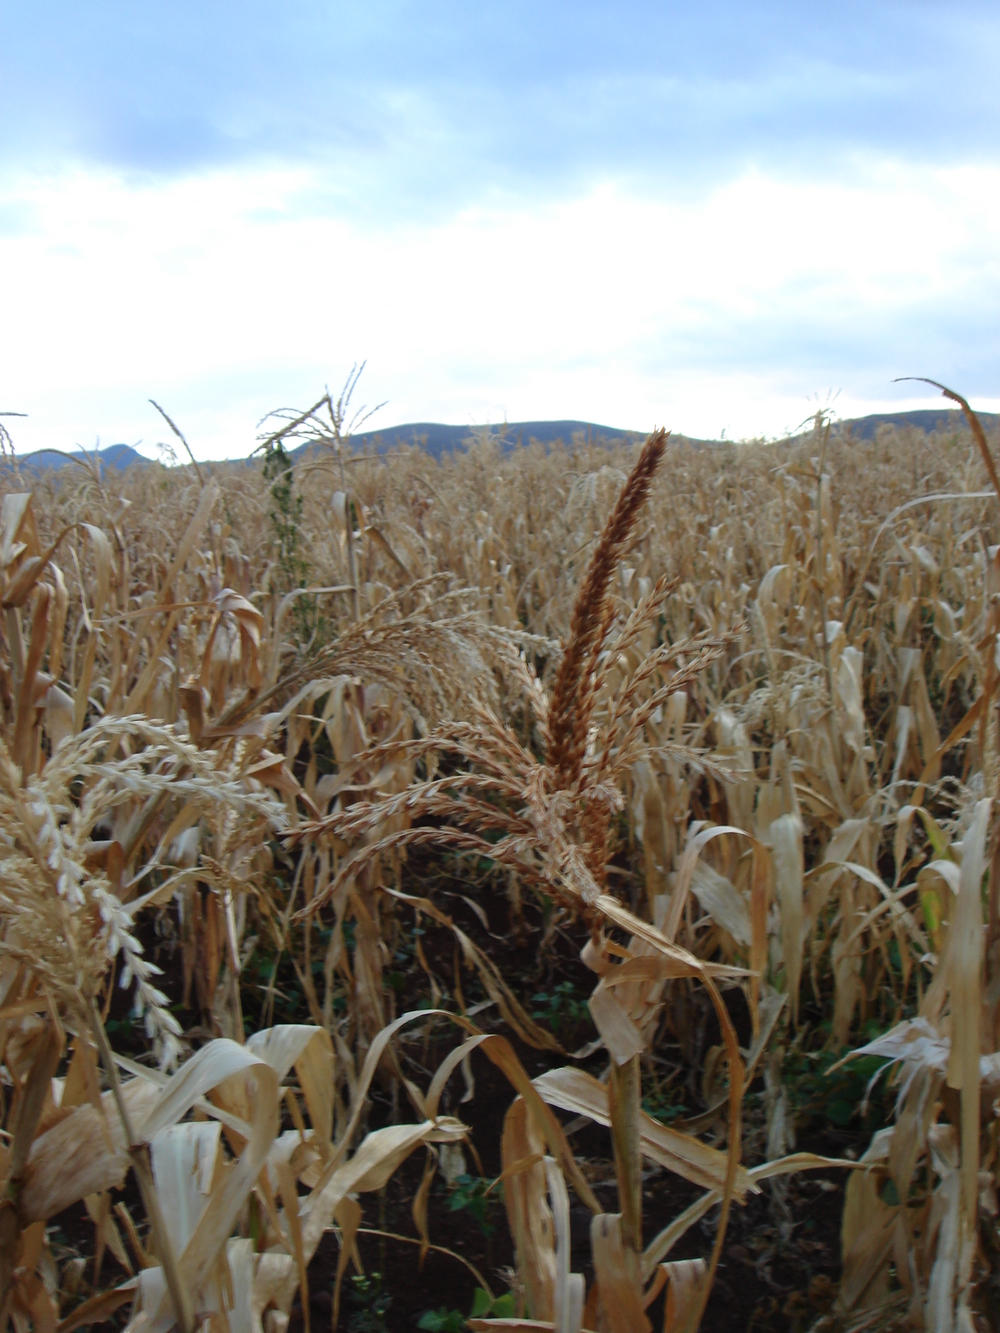 A long dry spell has wilted maize fields - drought 2006.